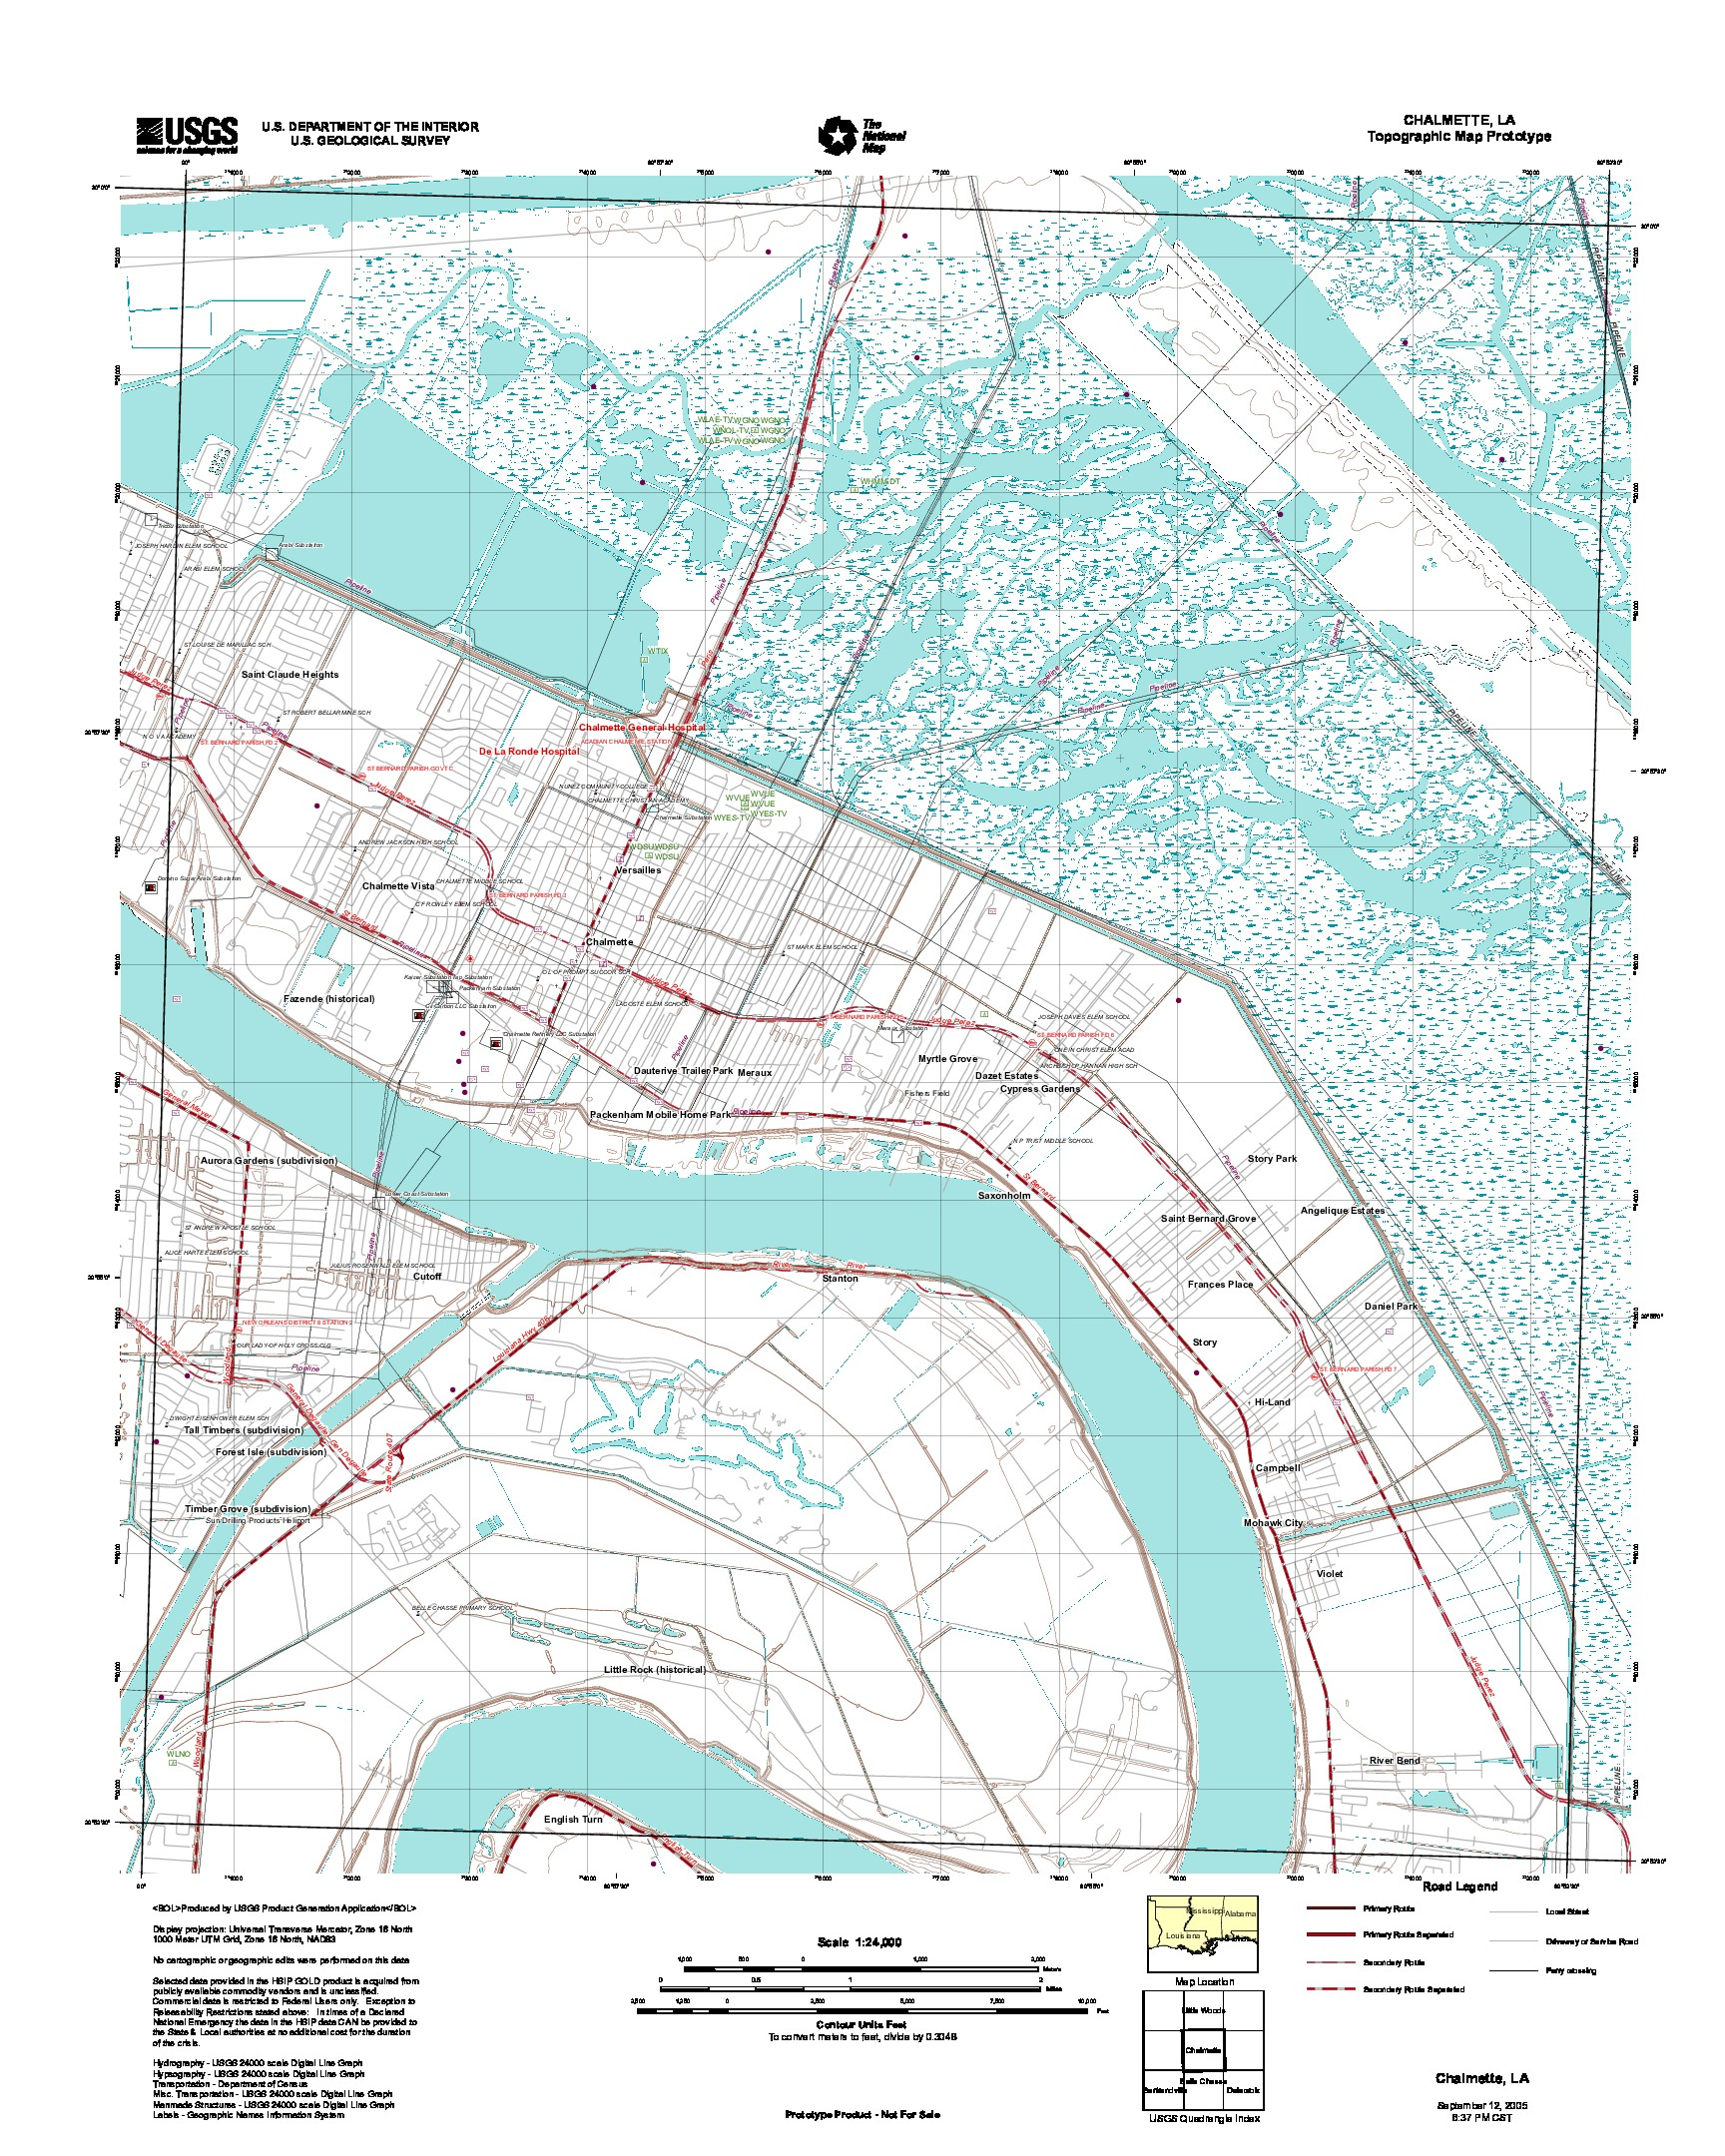 Chalmette, Topographic Map Prototype, Louisiana, United States, September 12, 2005